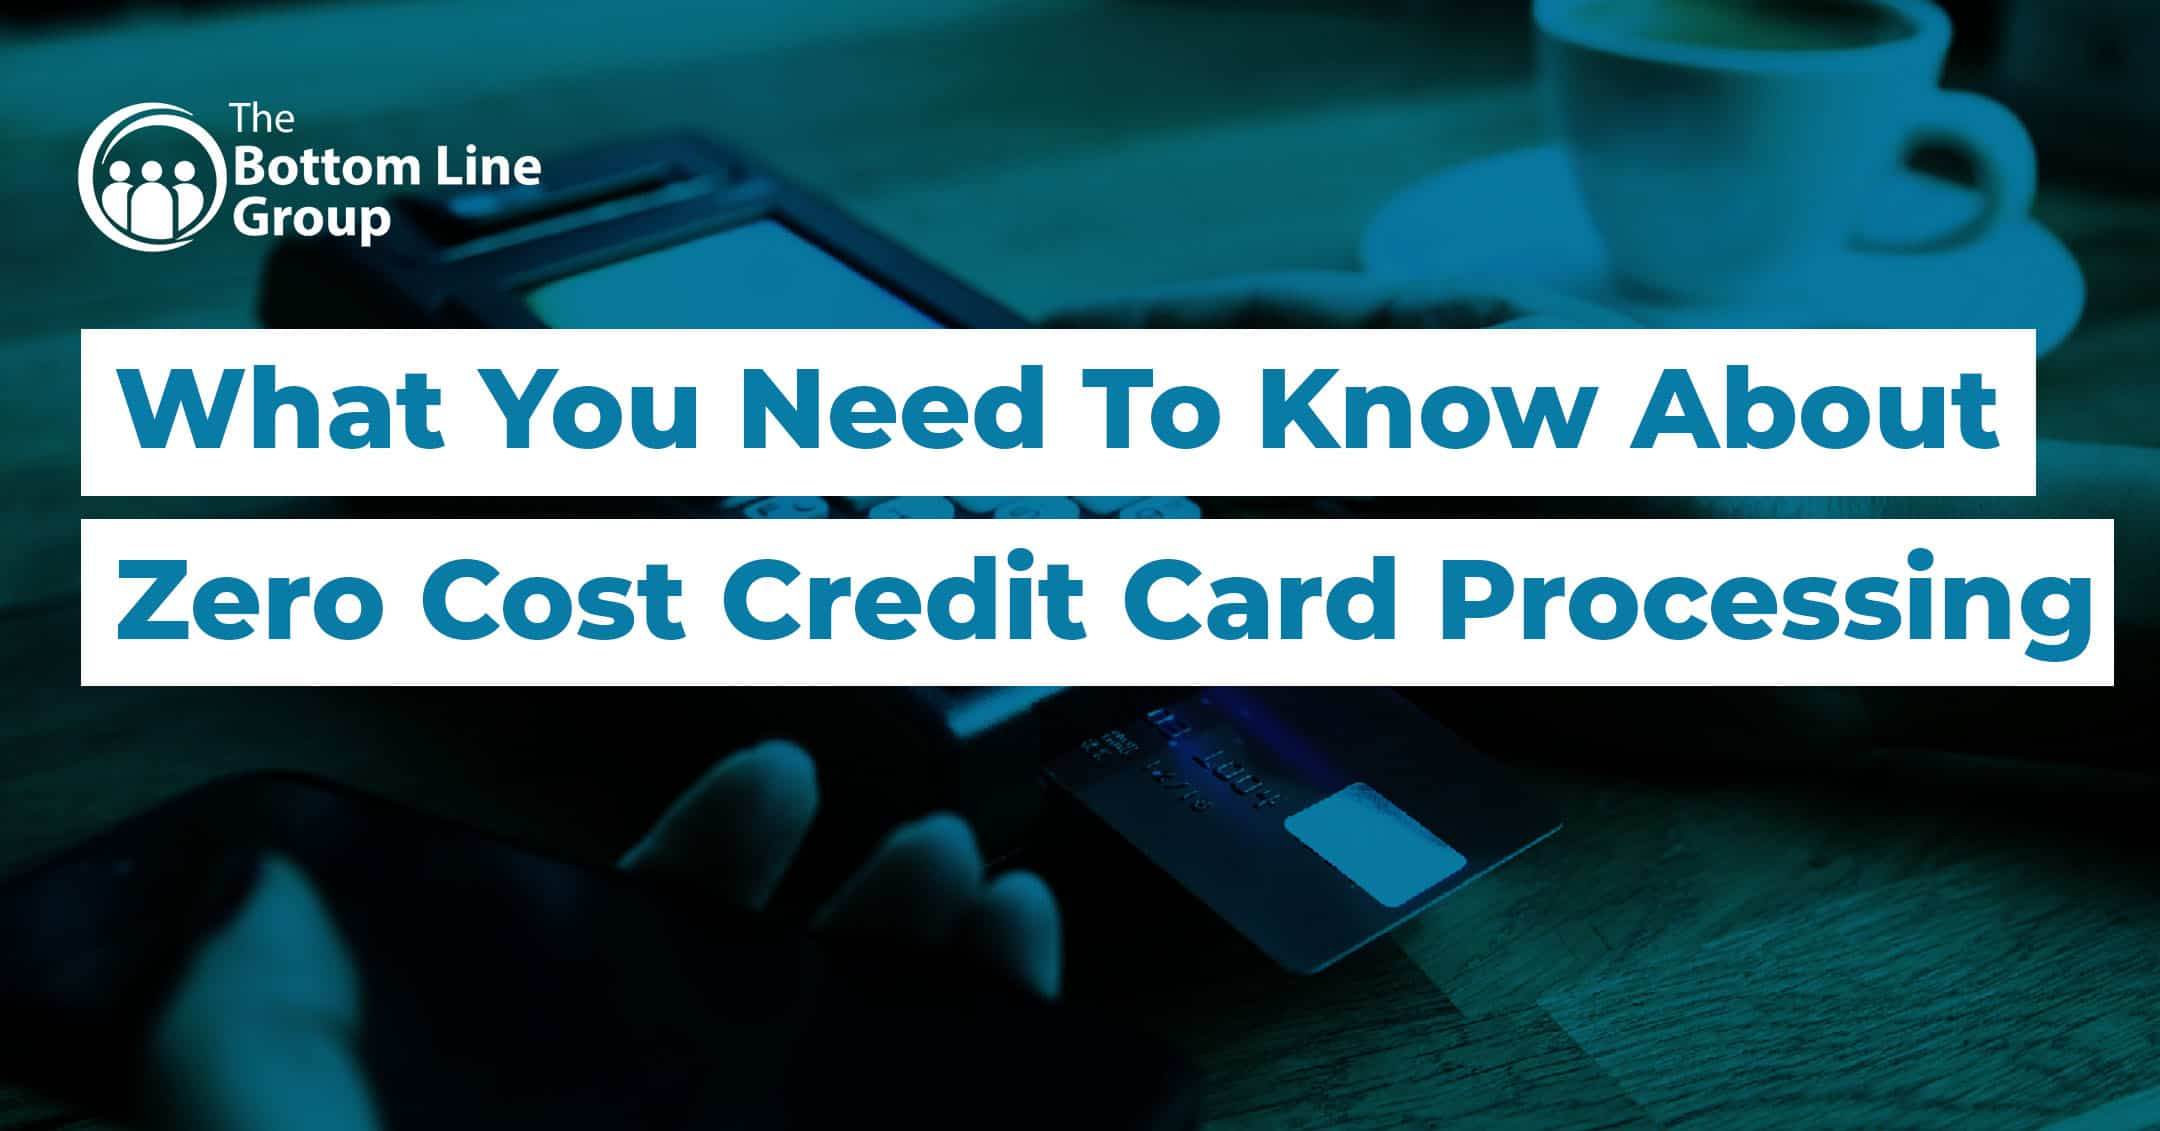 63-(What You Need To Know About Zero Cost Credit Card Processing)